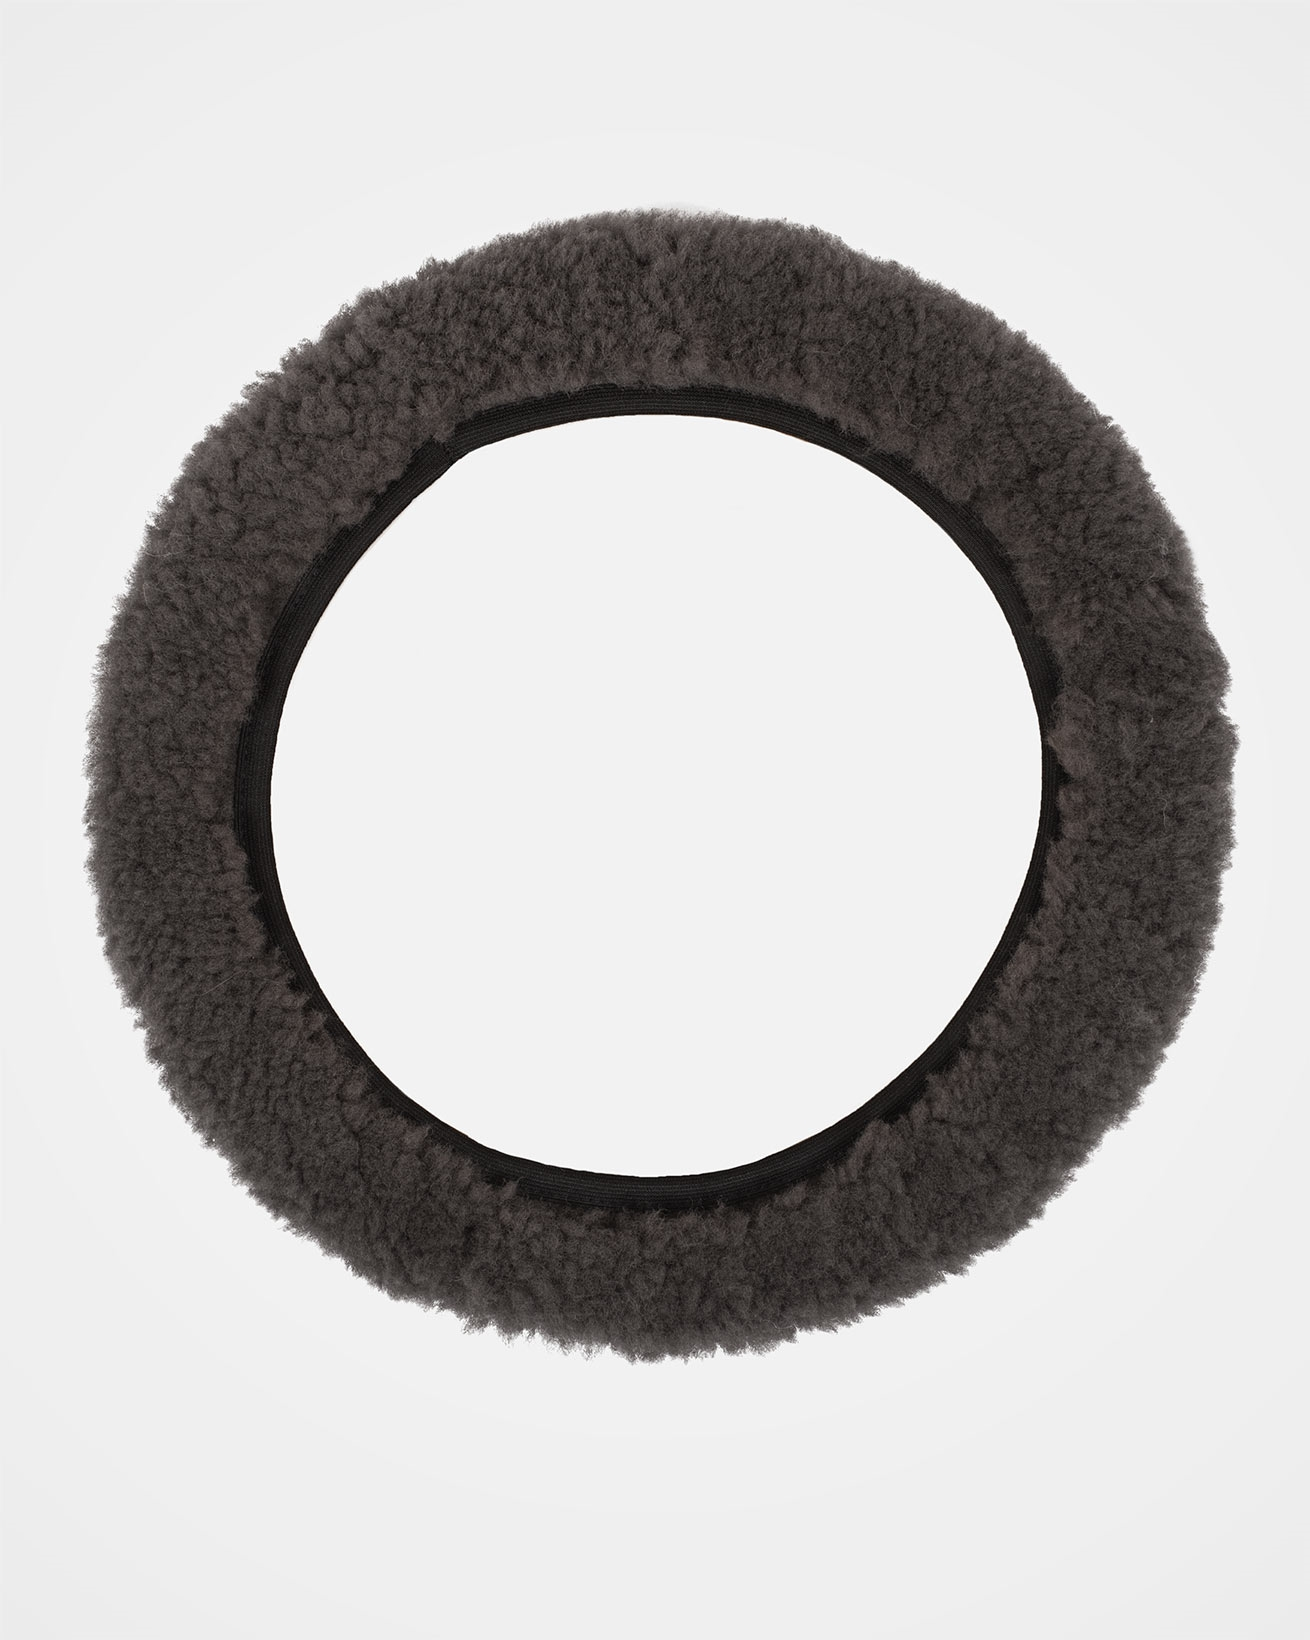 Steering Wheel Cover - One Size - Hurricane - 2054